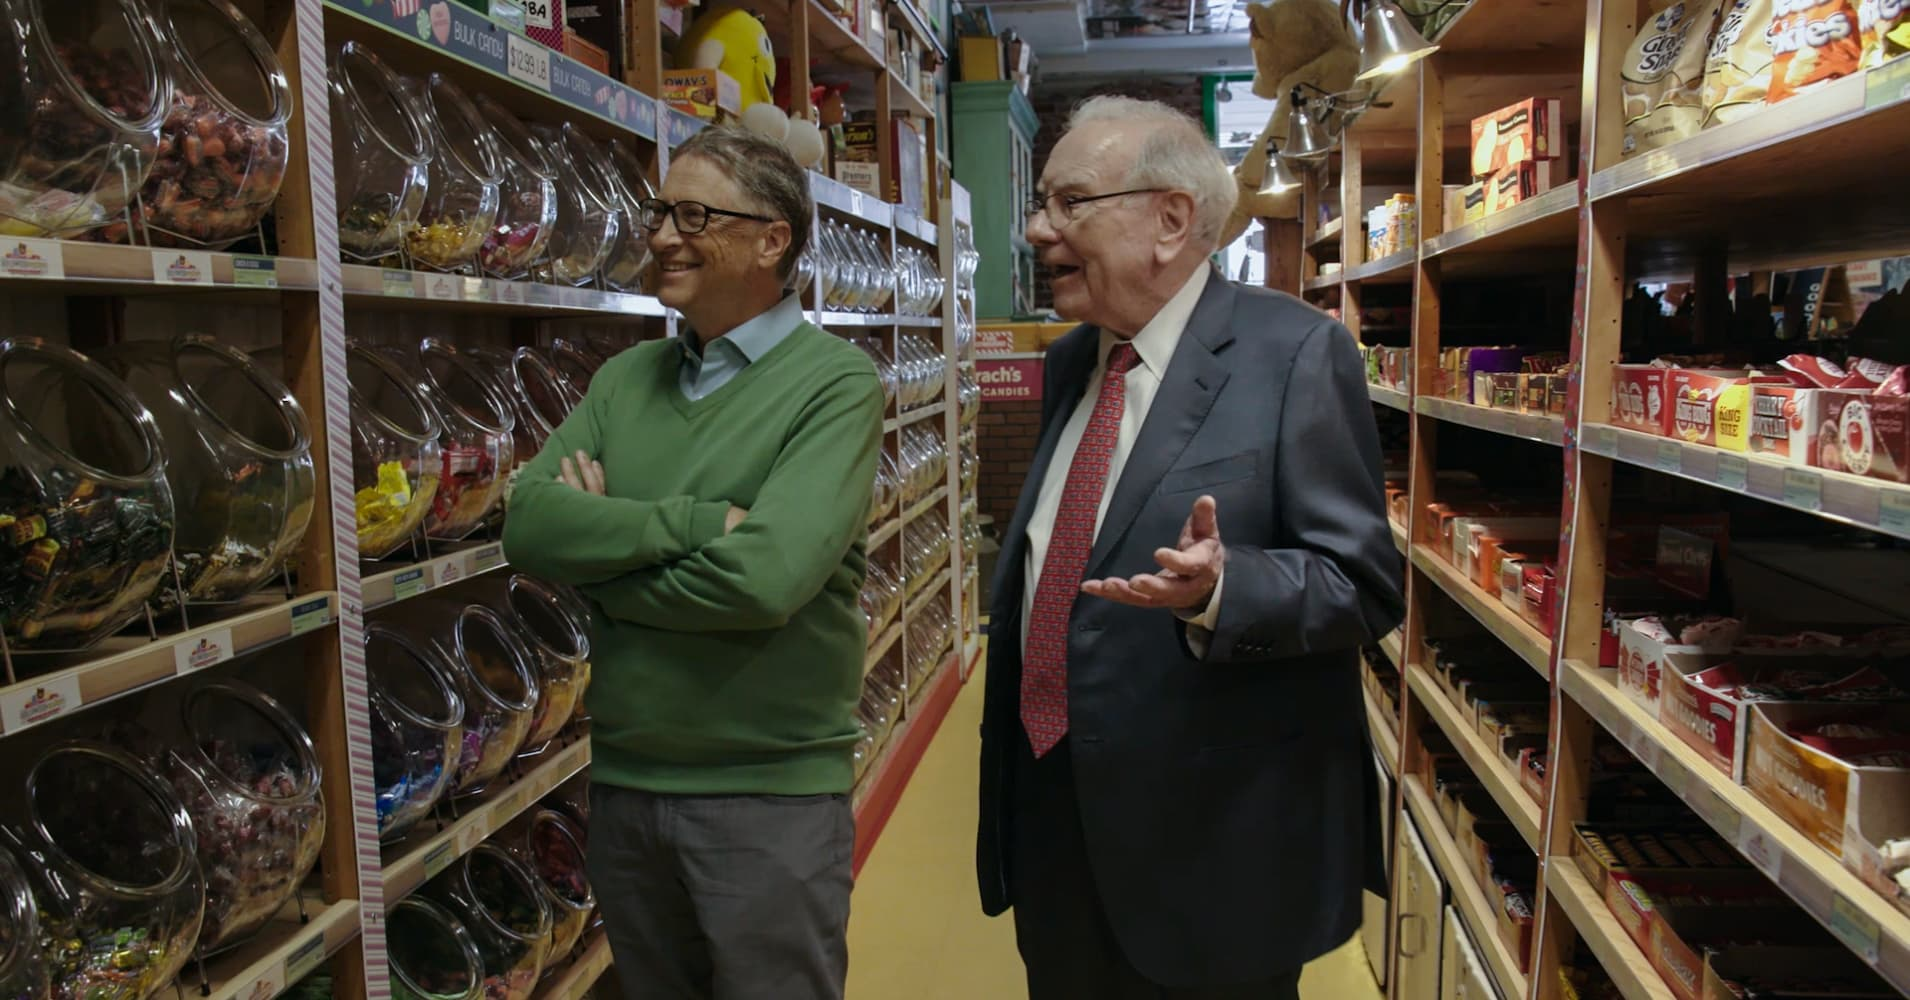 Warren Buffett and Bill Gates visited a candy store in Omaha during this year's Berkshire Hathaway shareholder meeting